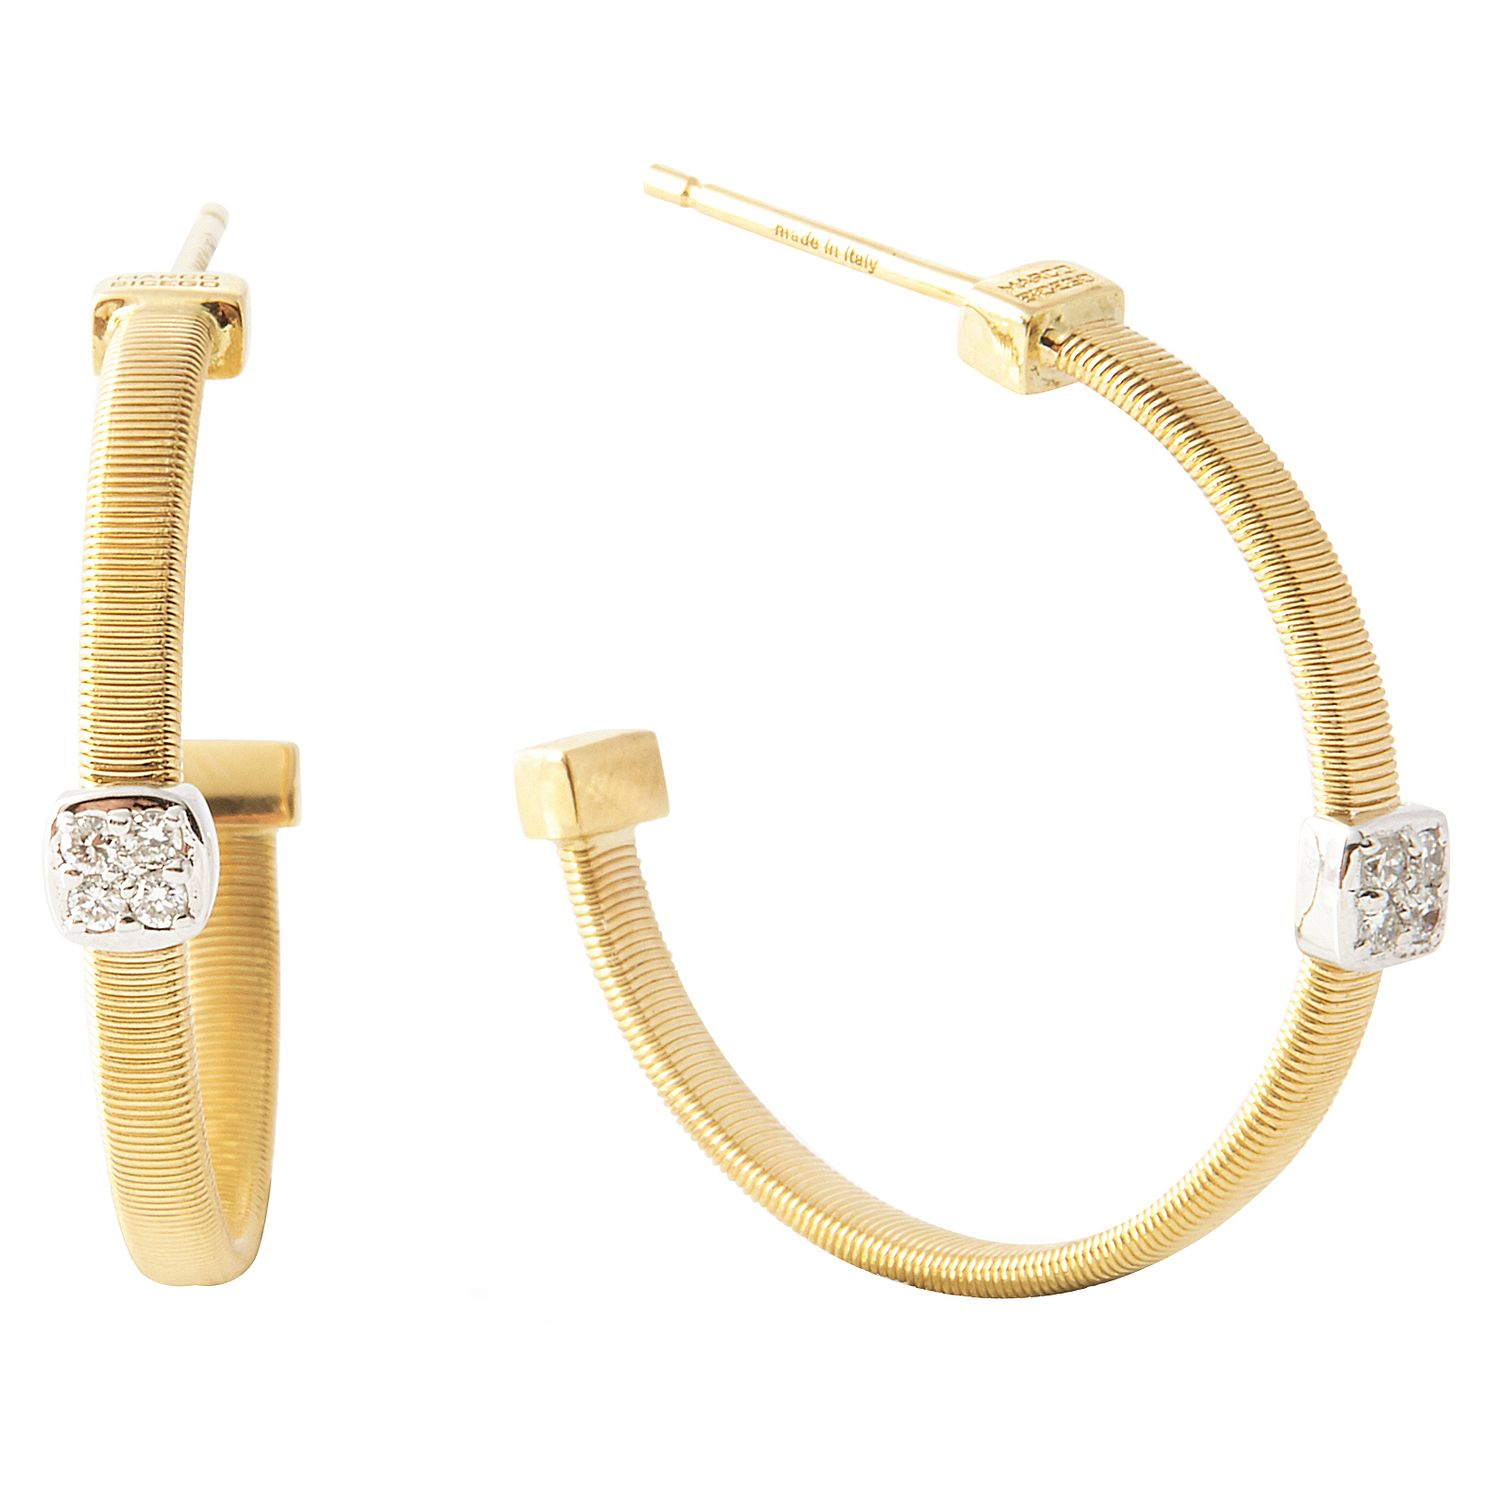 Marco Bicego 18ct Gold Masai 0.06ct Diamond Hoop Earrings - Product number 5279909